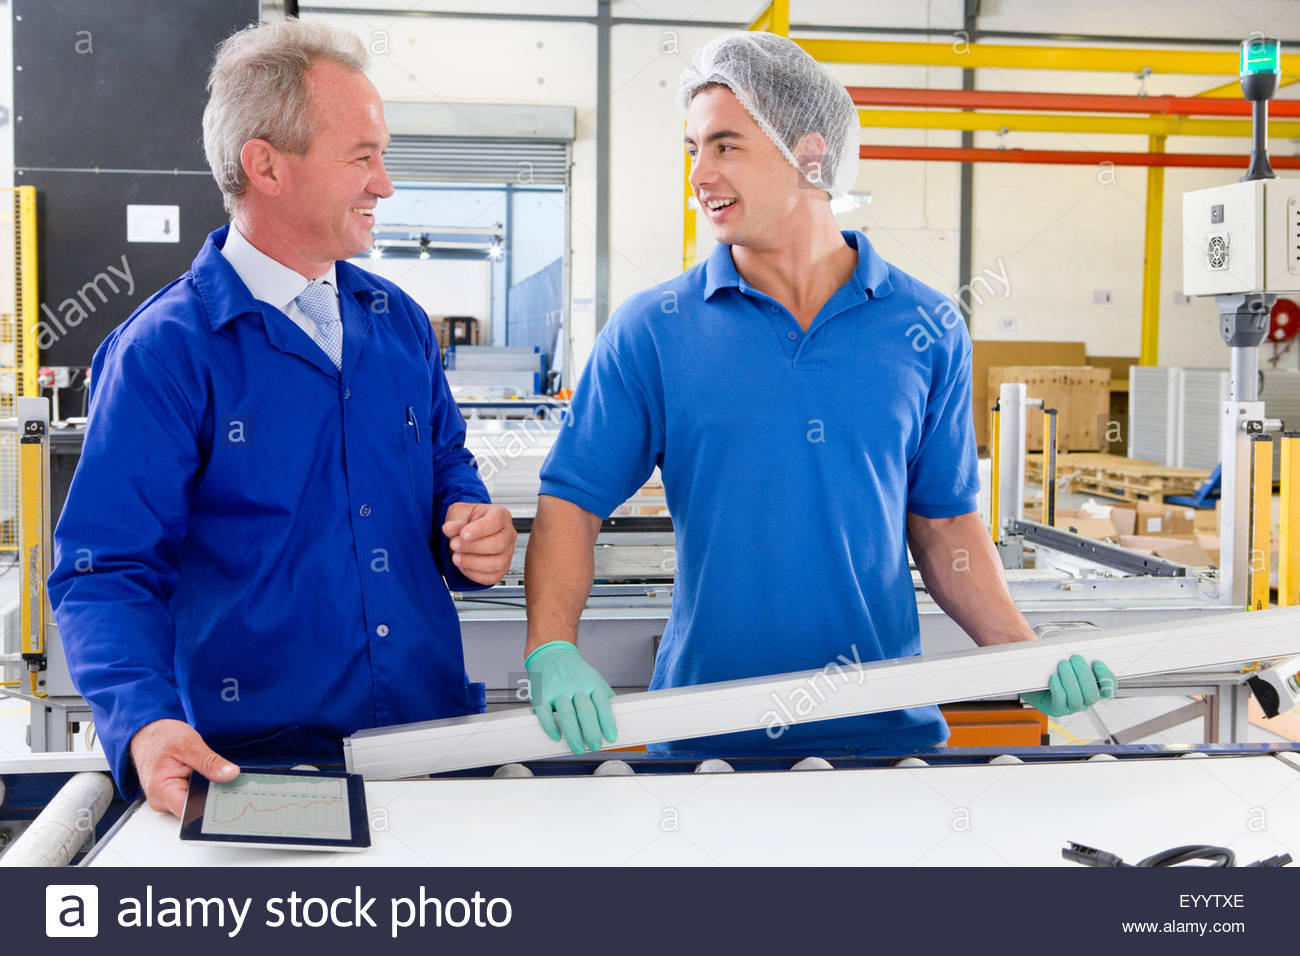 Supervisor training worker apprentice on solar panel factory floor production line - Stock Image